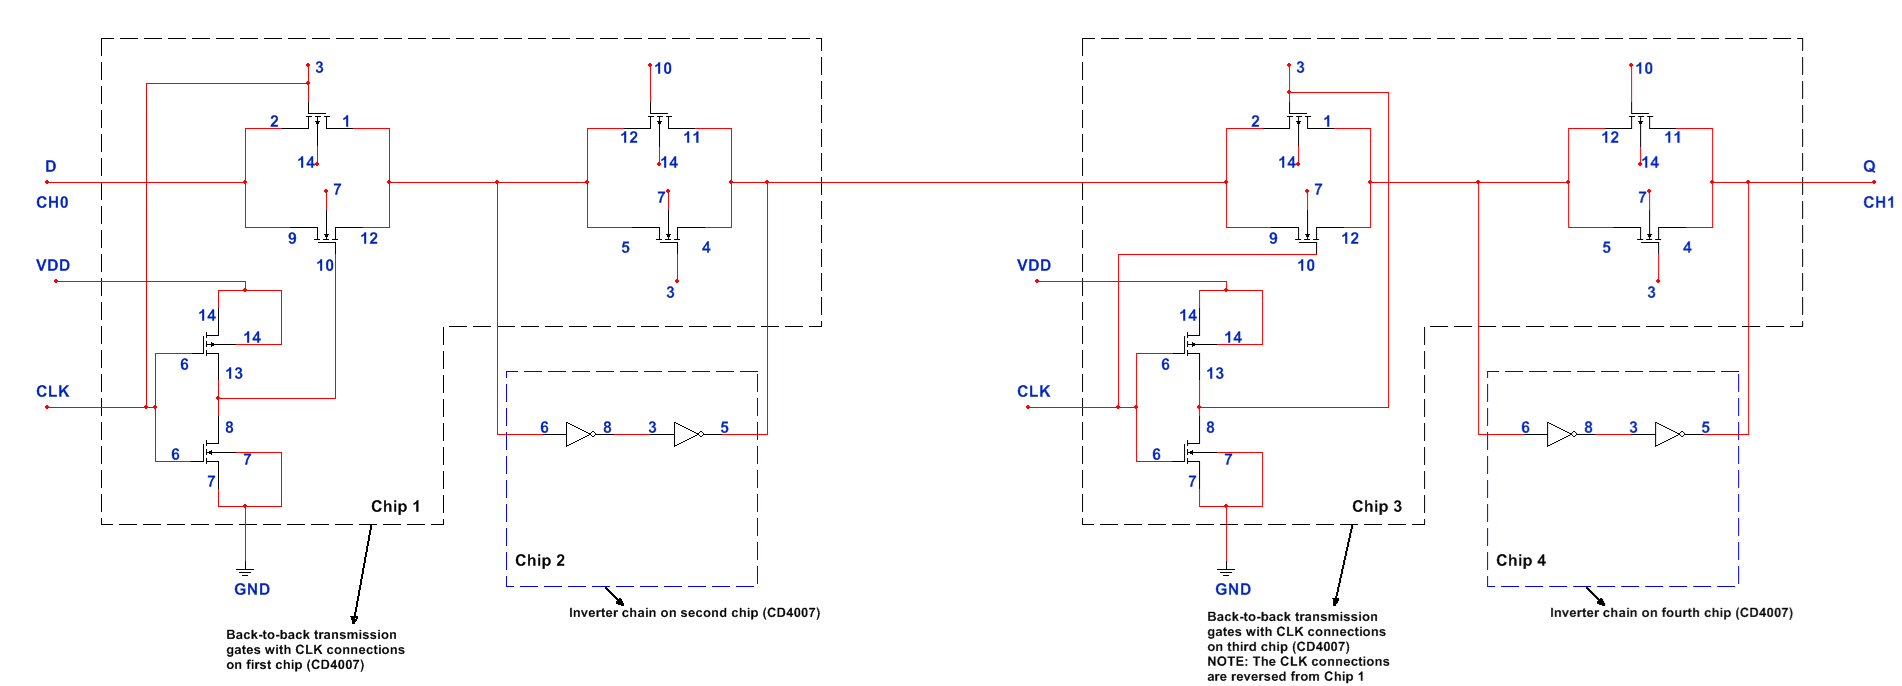 8 Cmos Logic Circuits Elec2210 10 Documentation Construct A Circuit Diagram Figure Schematic Of D Flip Flop